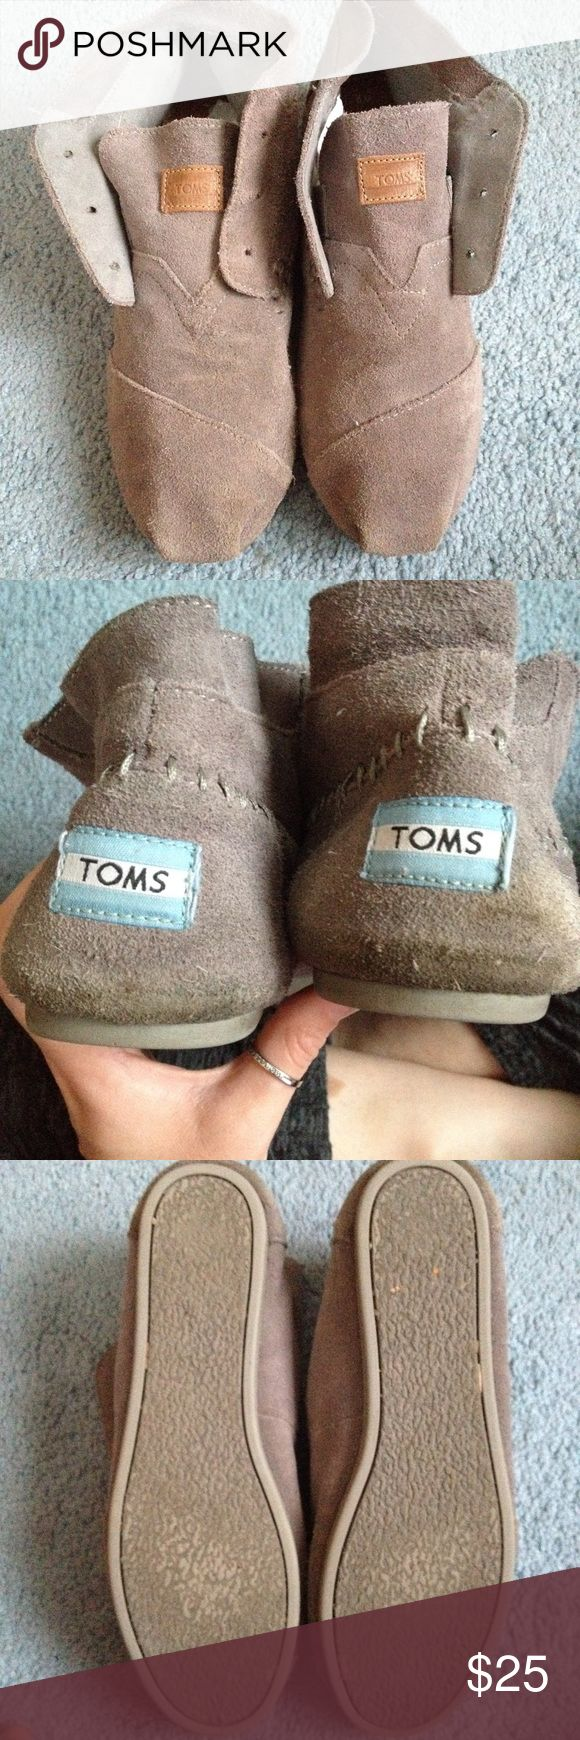 Women's TOMS Moccasins Grey TOMS Moccasins, some wear on the heels, shown in picture. Suede texture. (Not sold with laces) Toms Shoes Moccasins